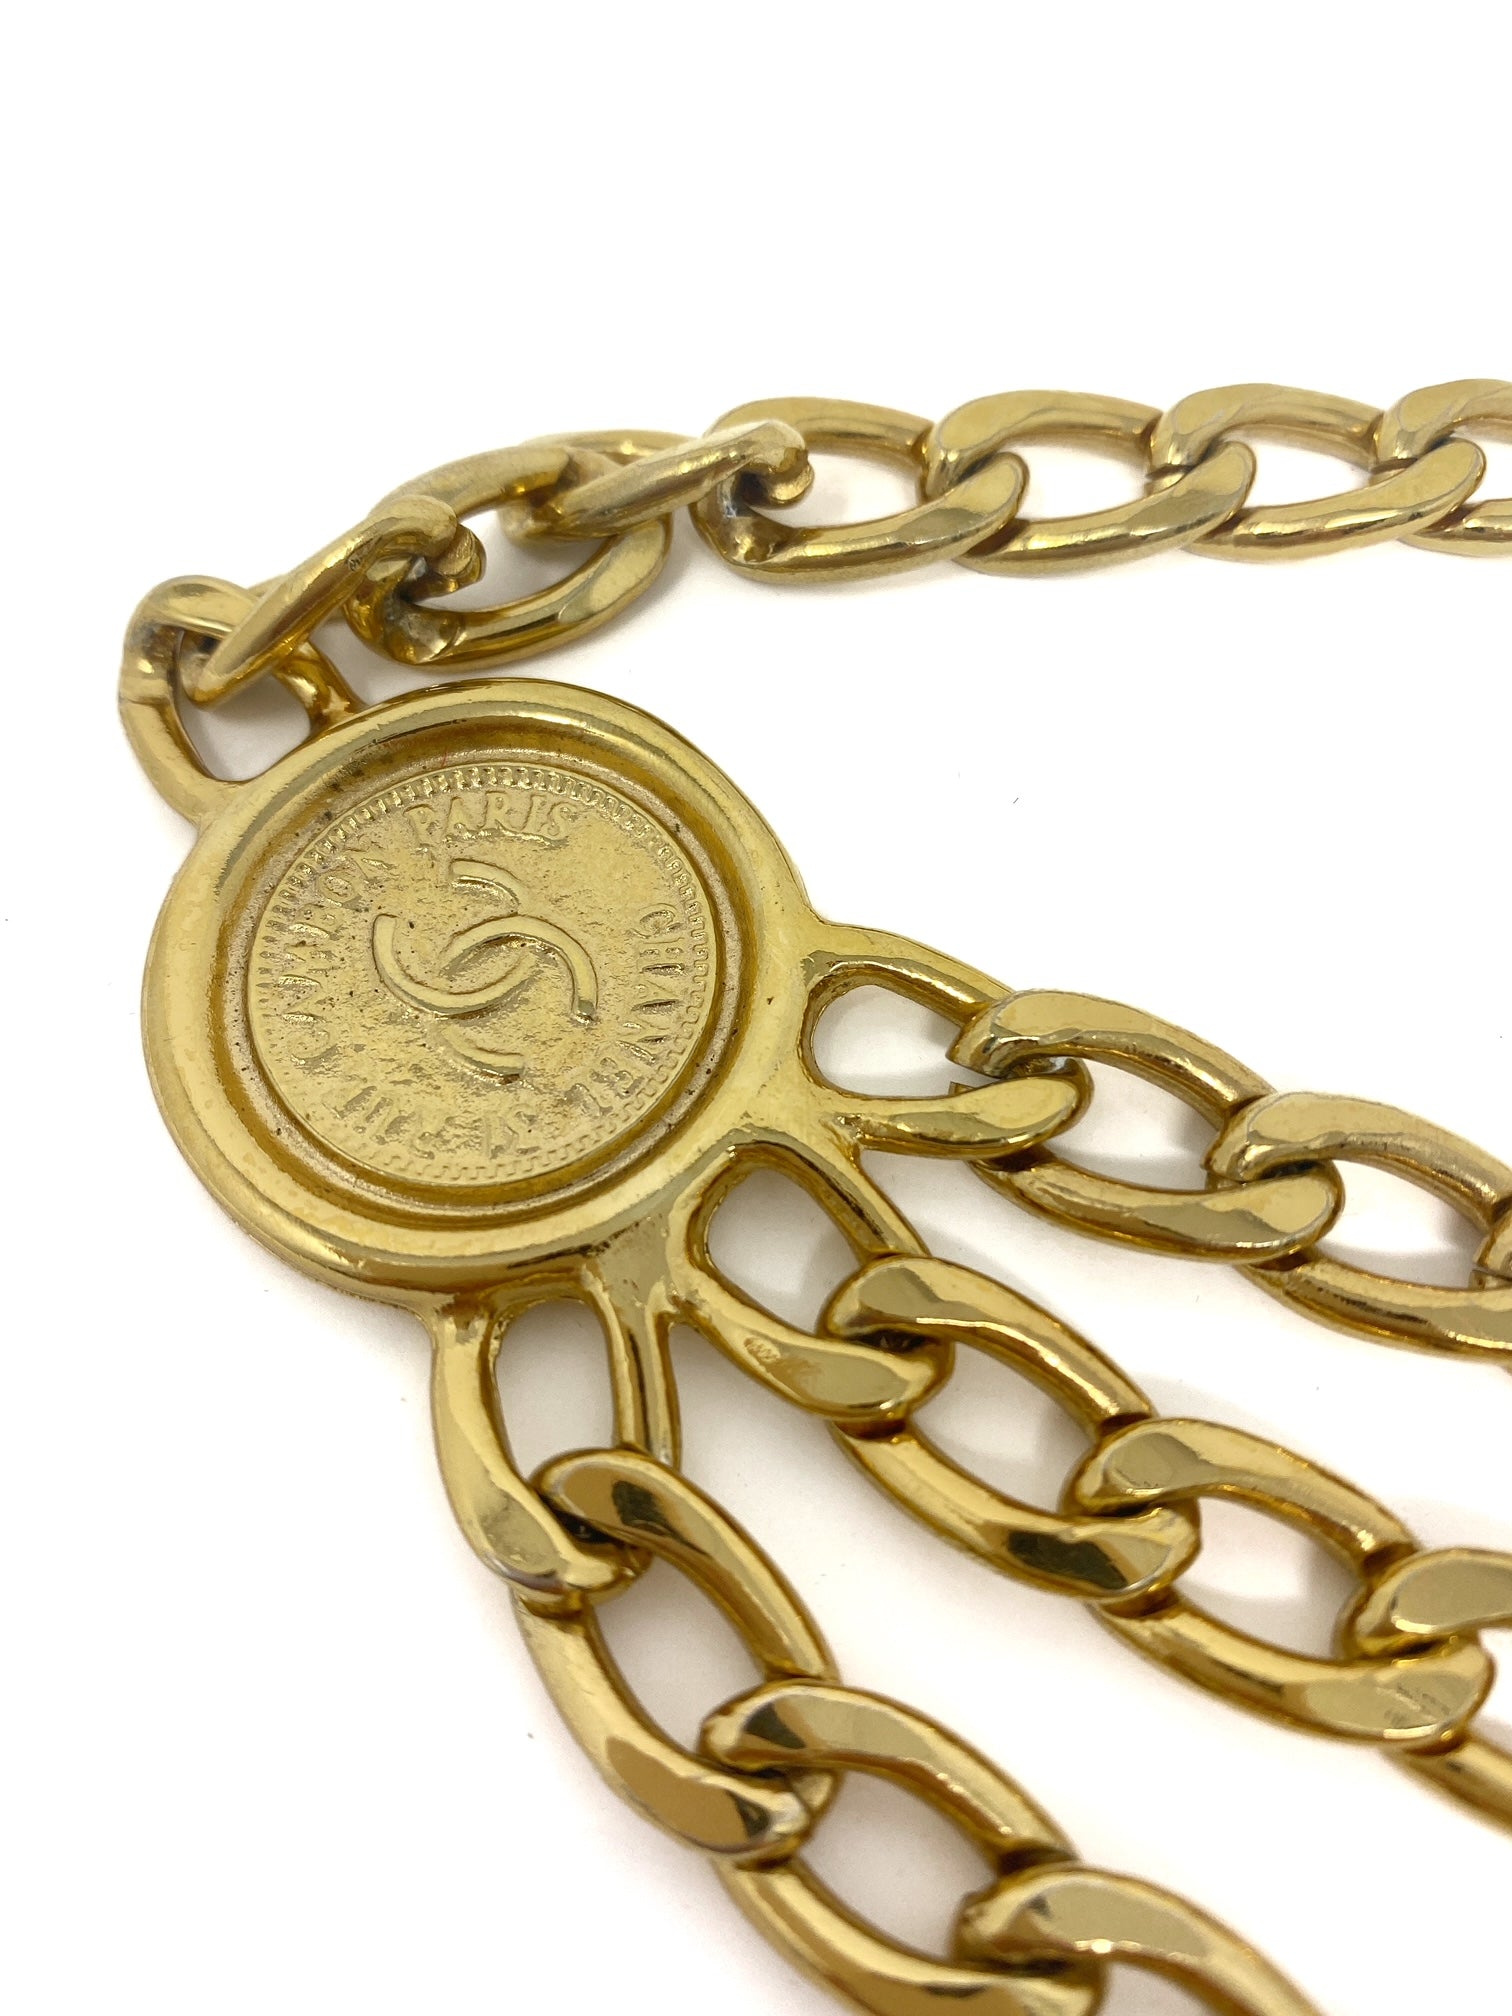 chanel gold chain belt, CC logo, medaillon